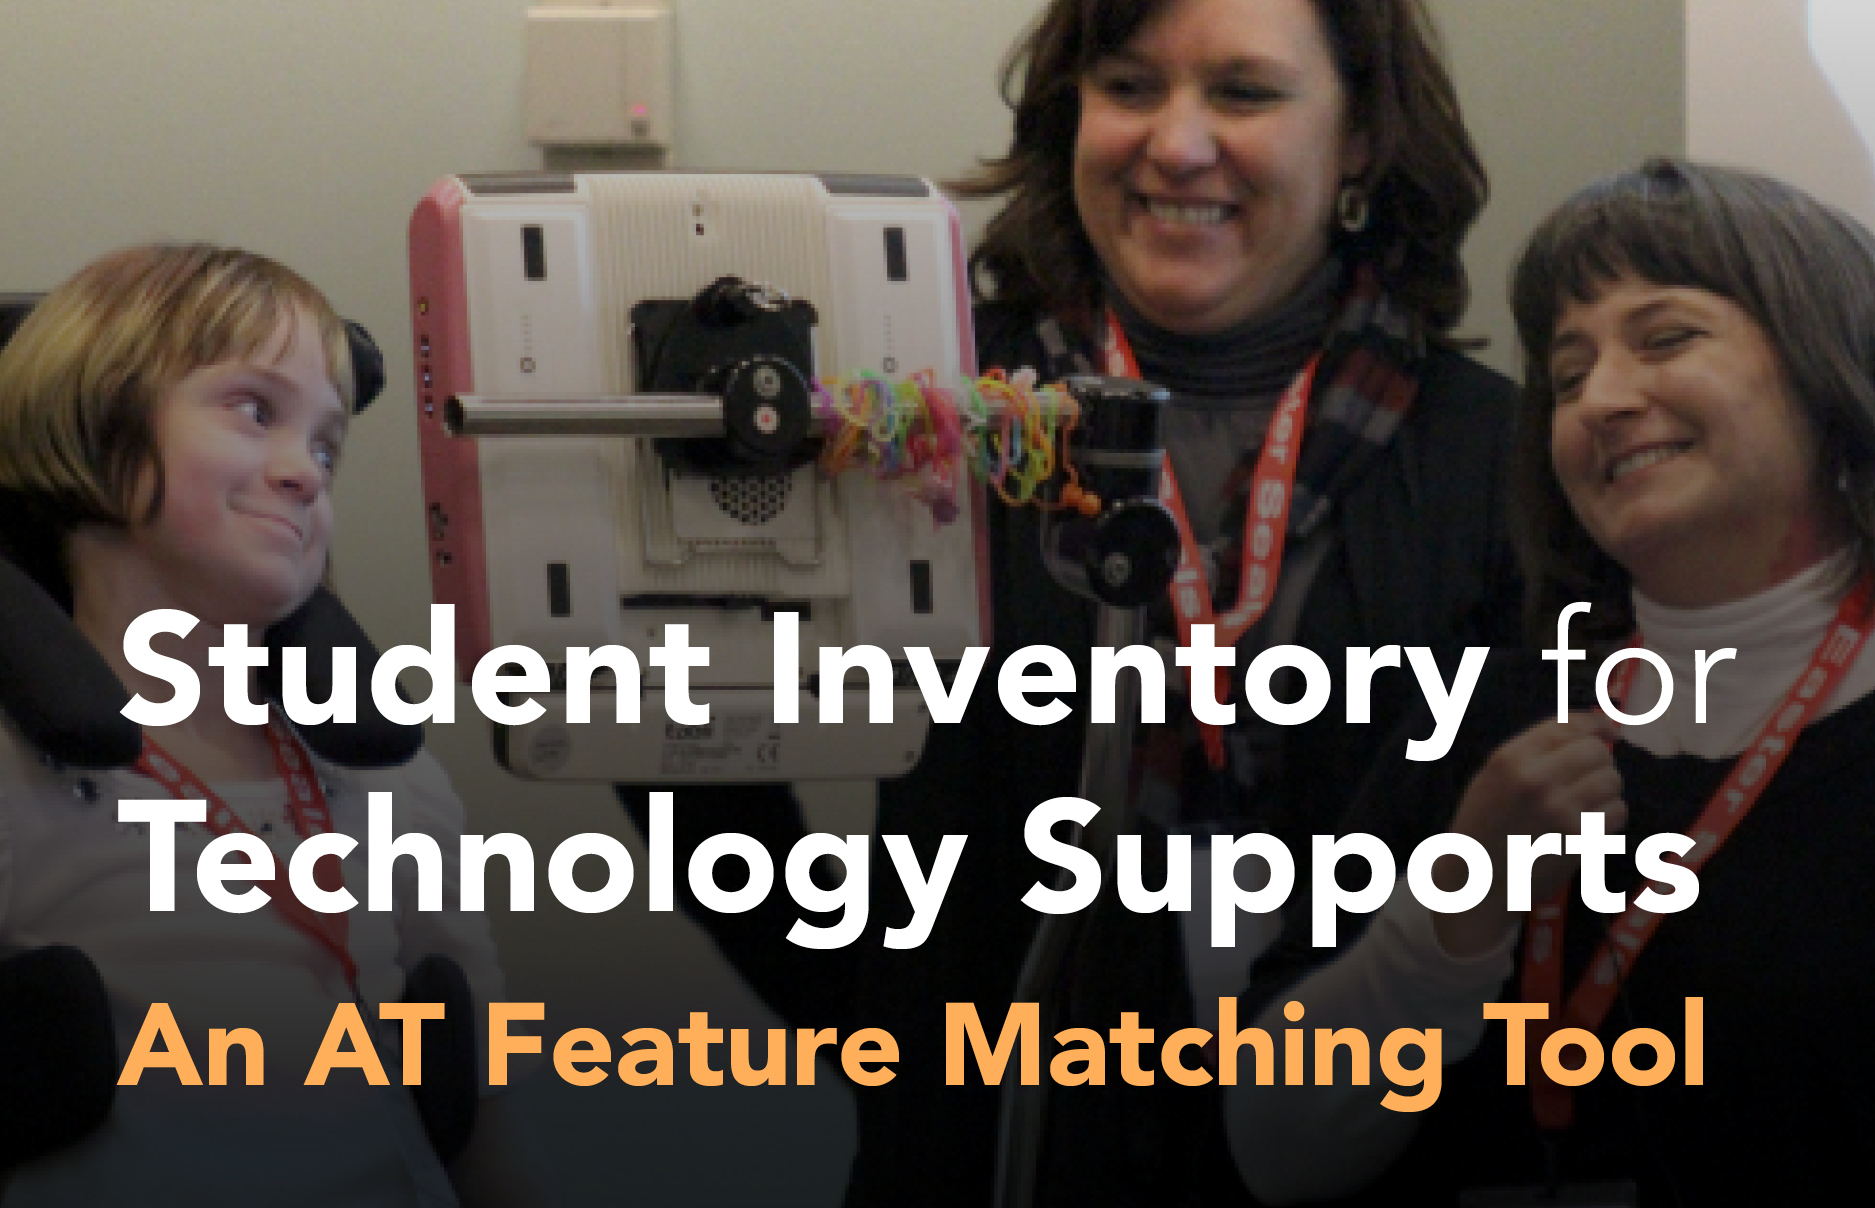 Student Inventory for Technology Supports